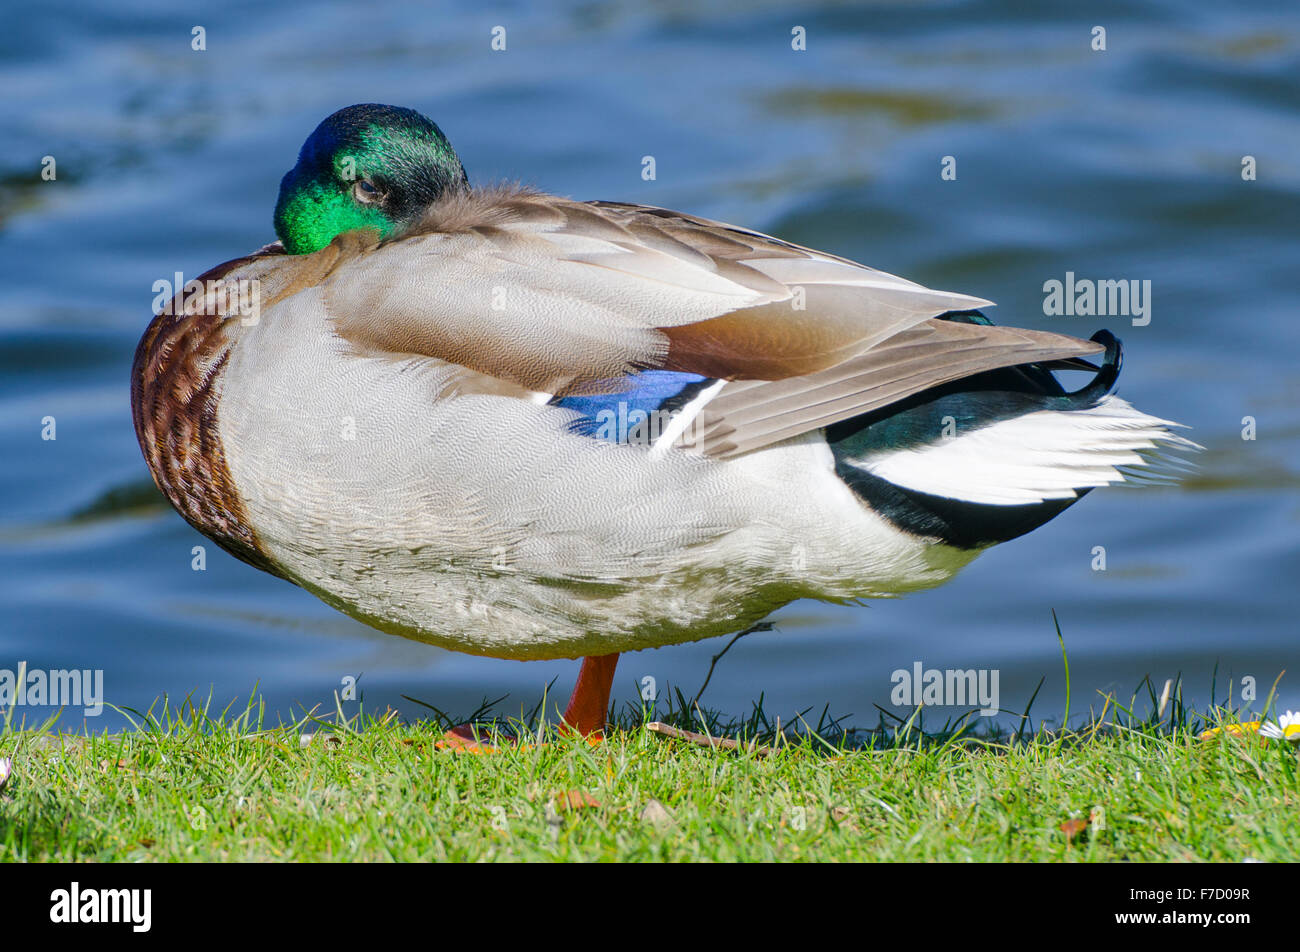 Drake Mallard duck (Anas platyrhynchos) standing on grass by the water in the UK. - Stock Image